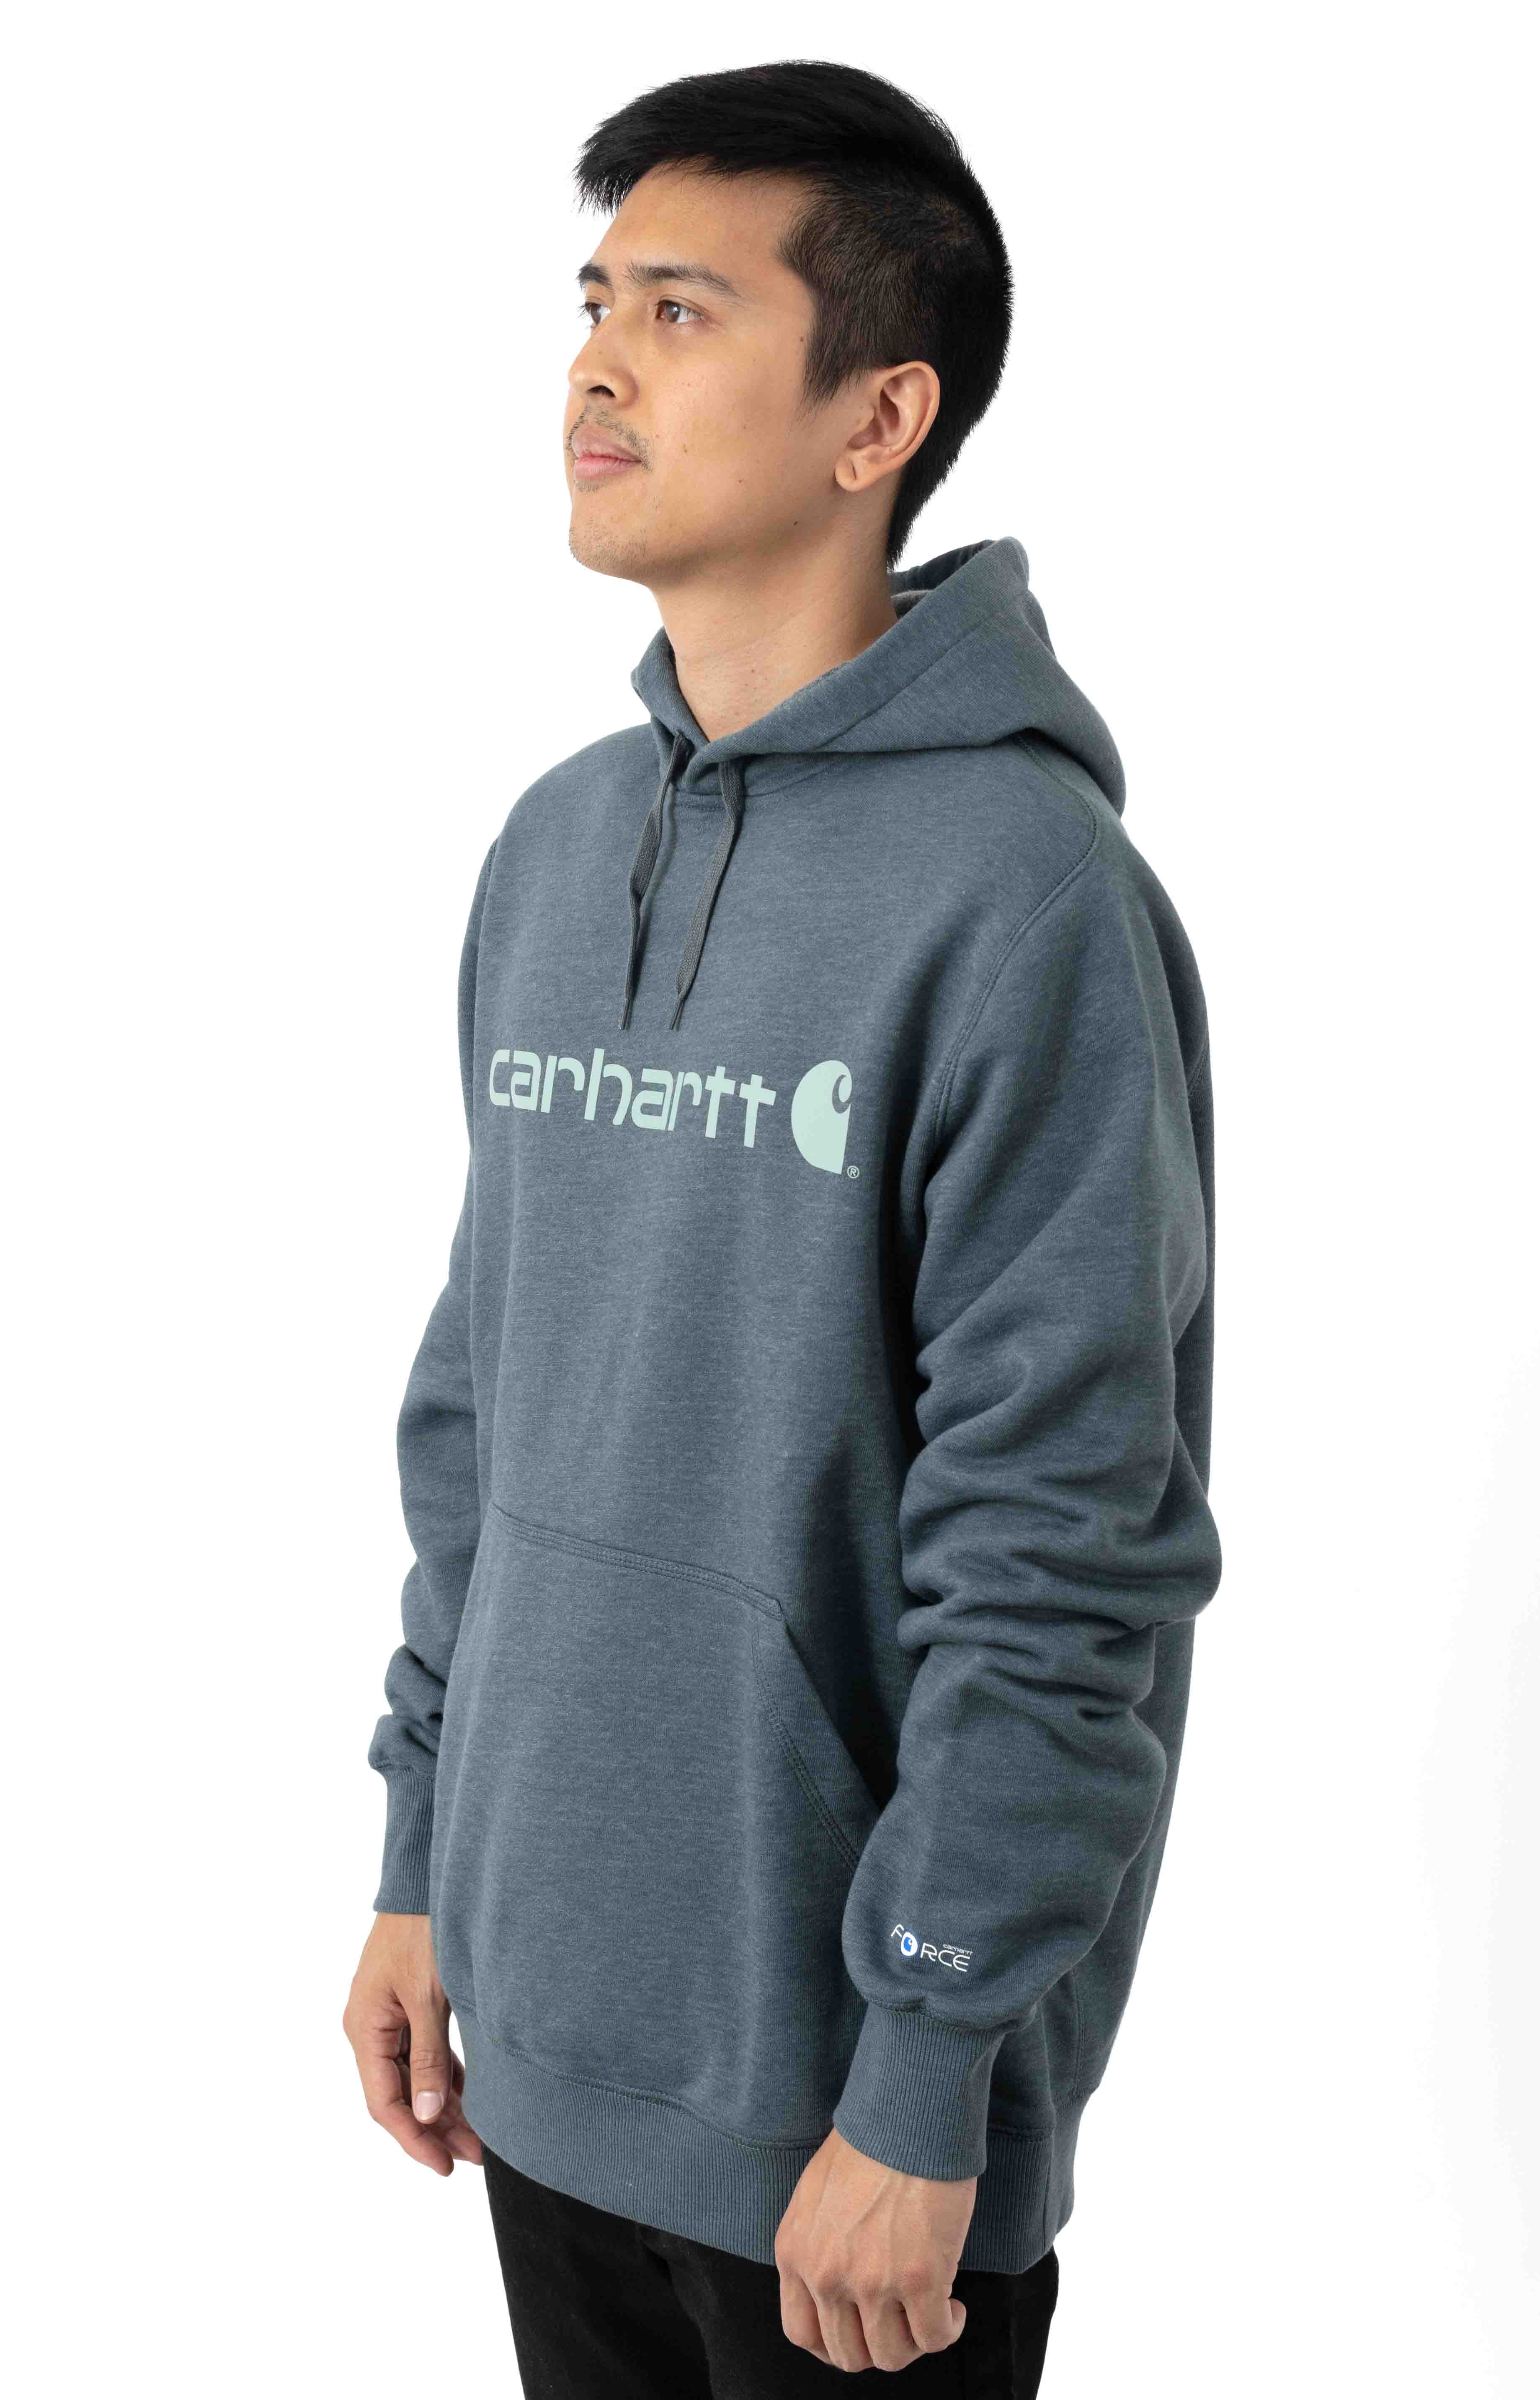 (103873) Force Delmont Signature Graphic Pullover Hoodie - Ink Green Heather  2